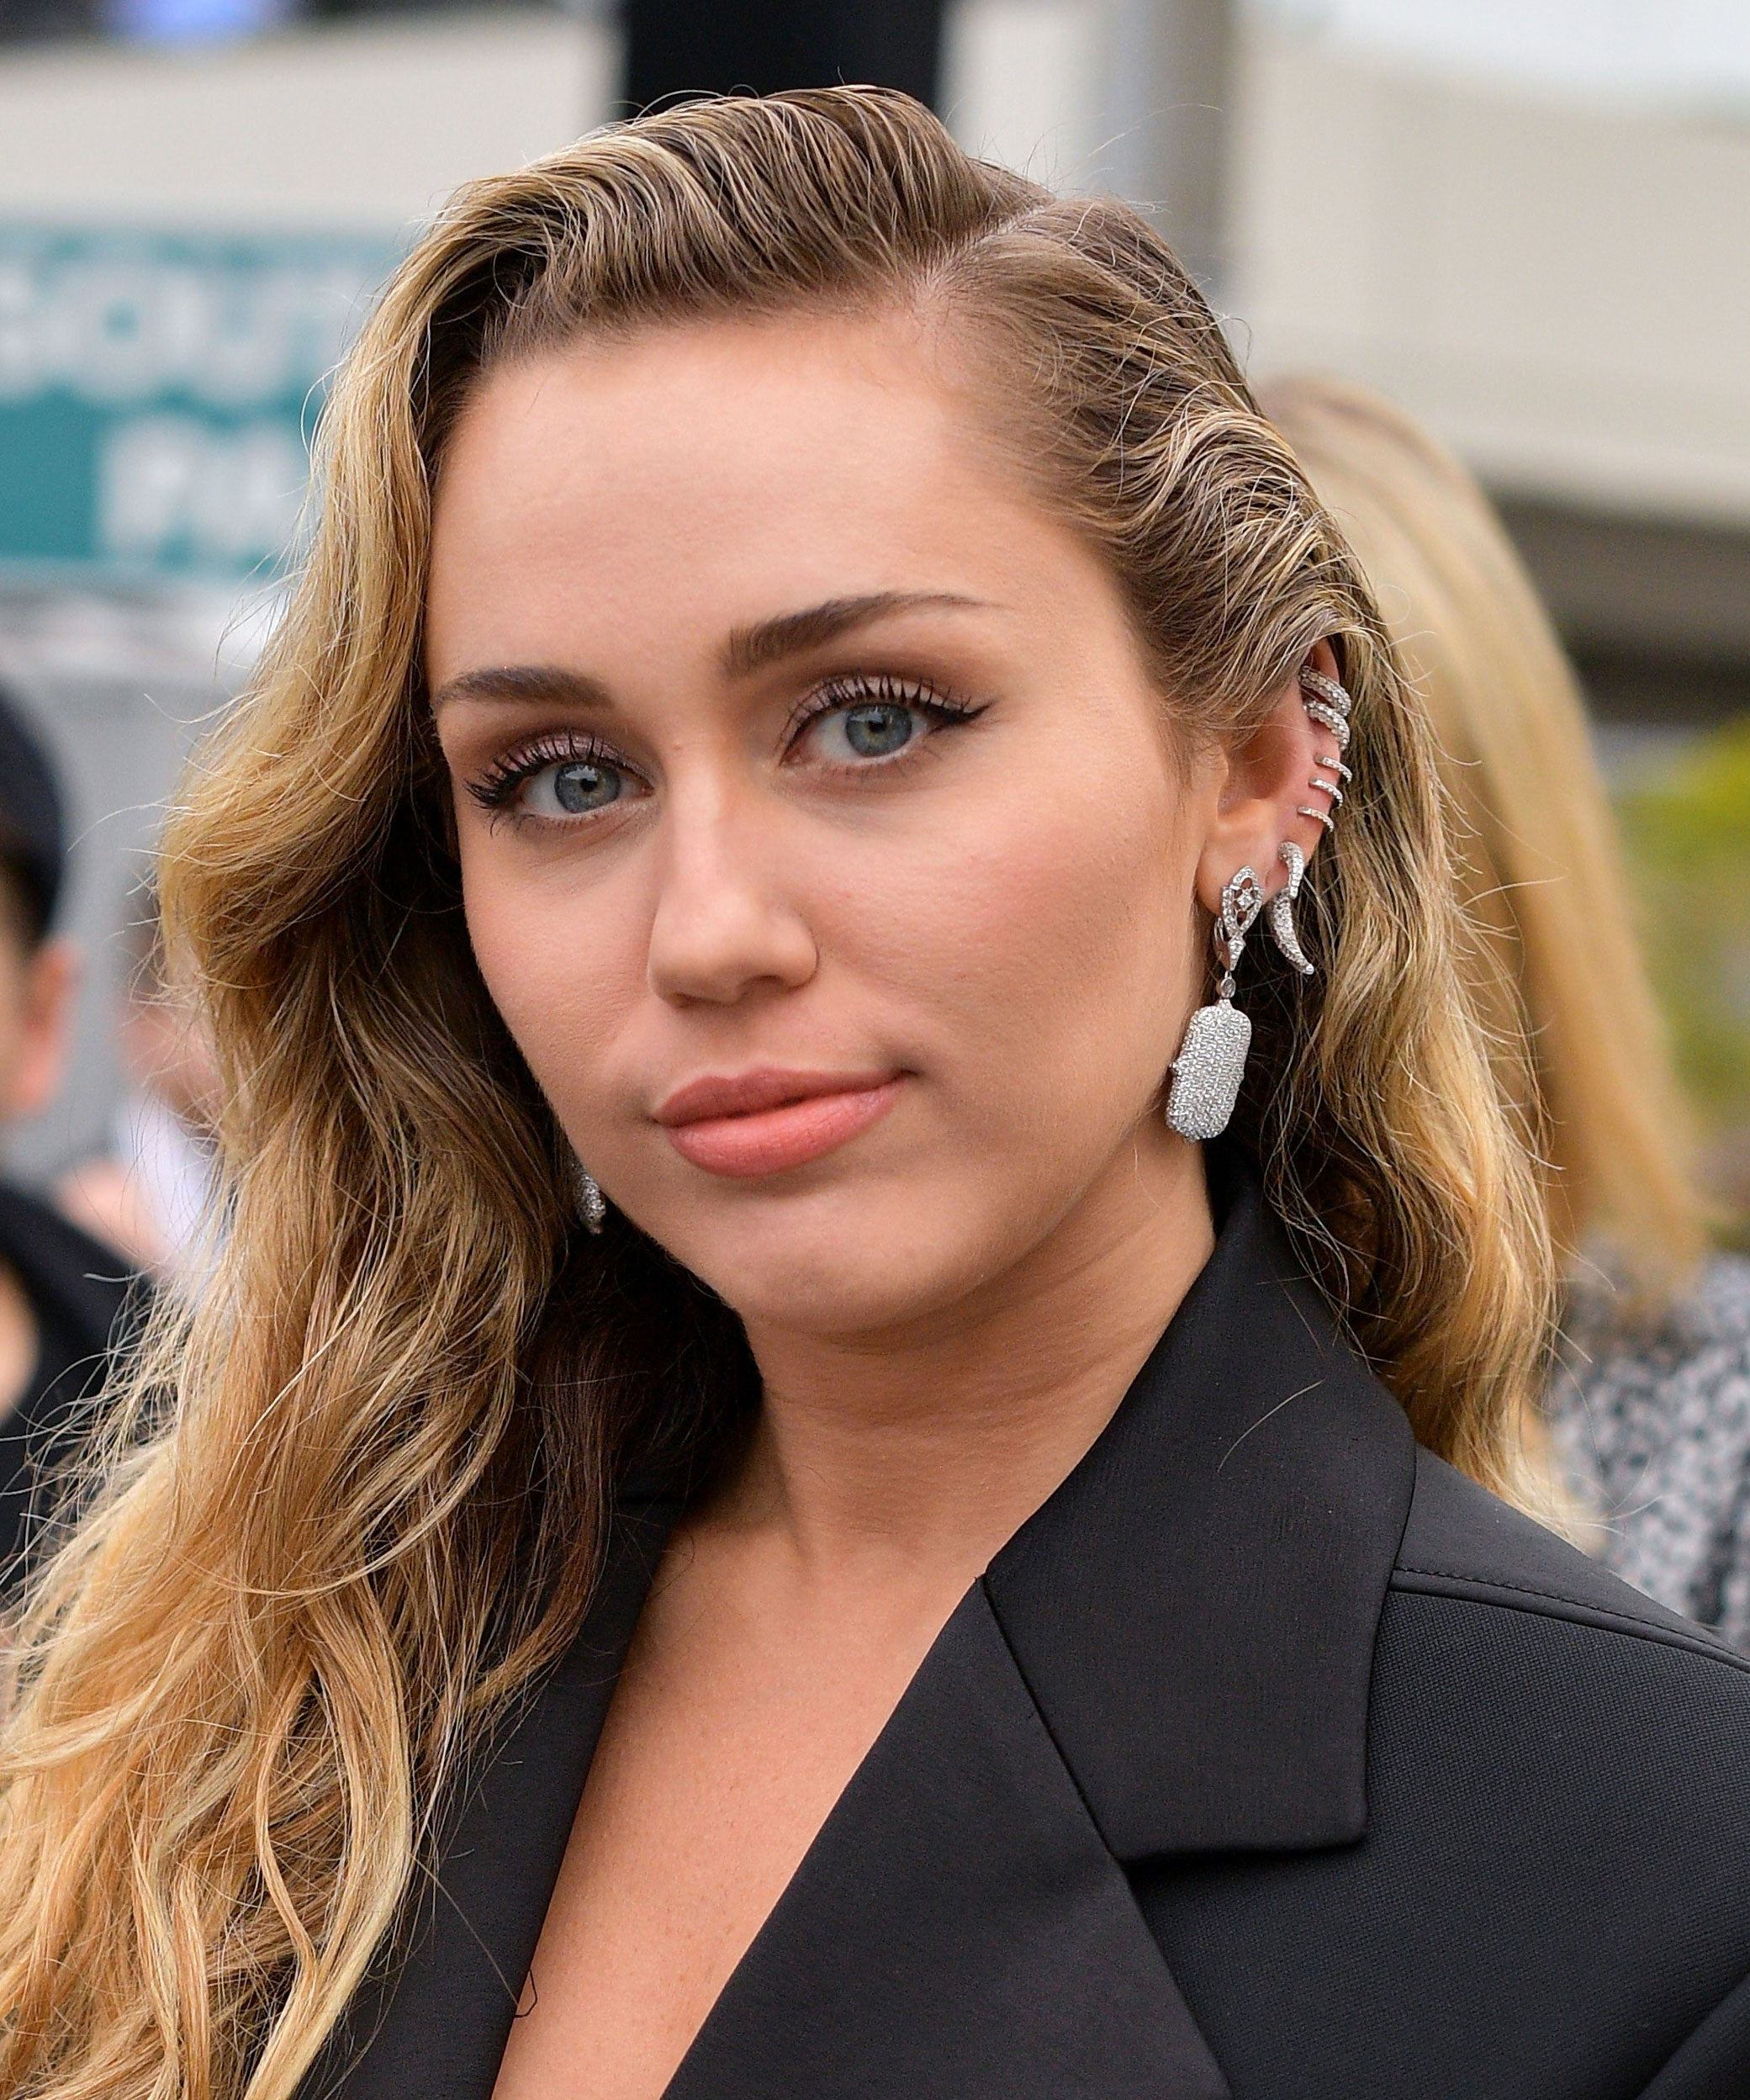 Miley Cyrus Debuts New Mullet Shag Haircut On Instagram